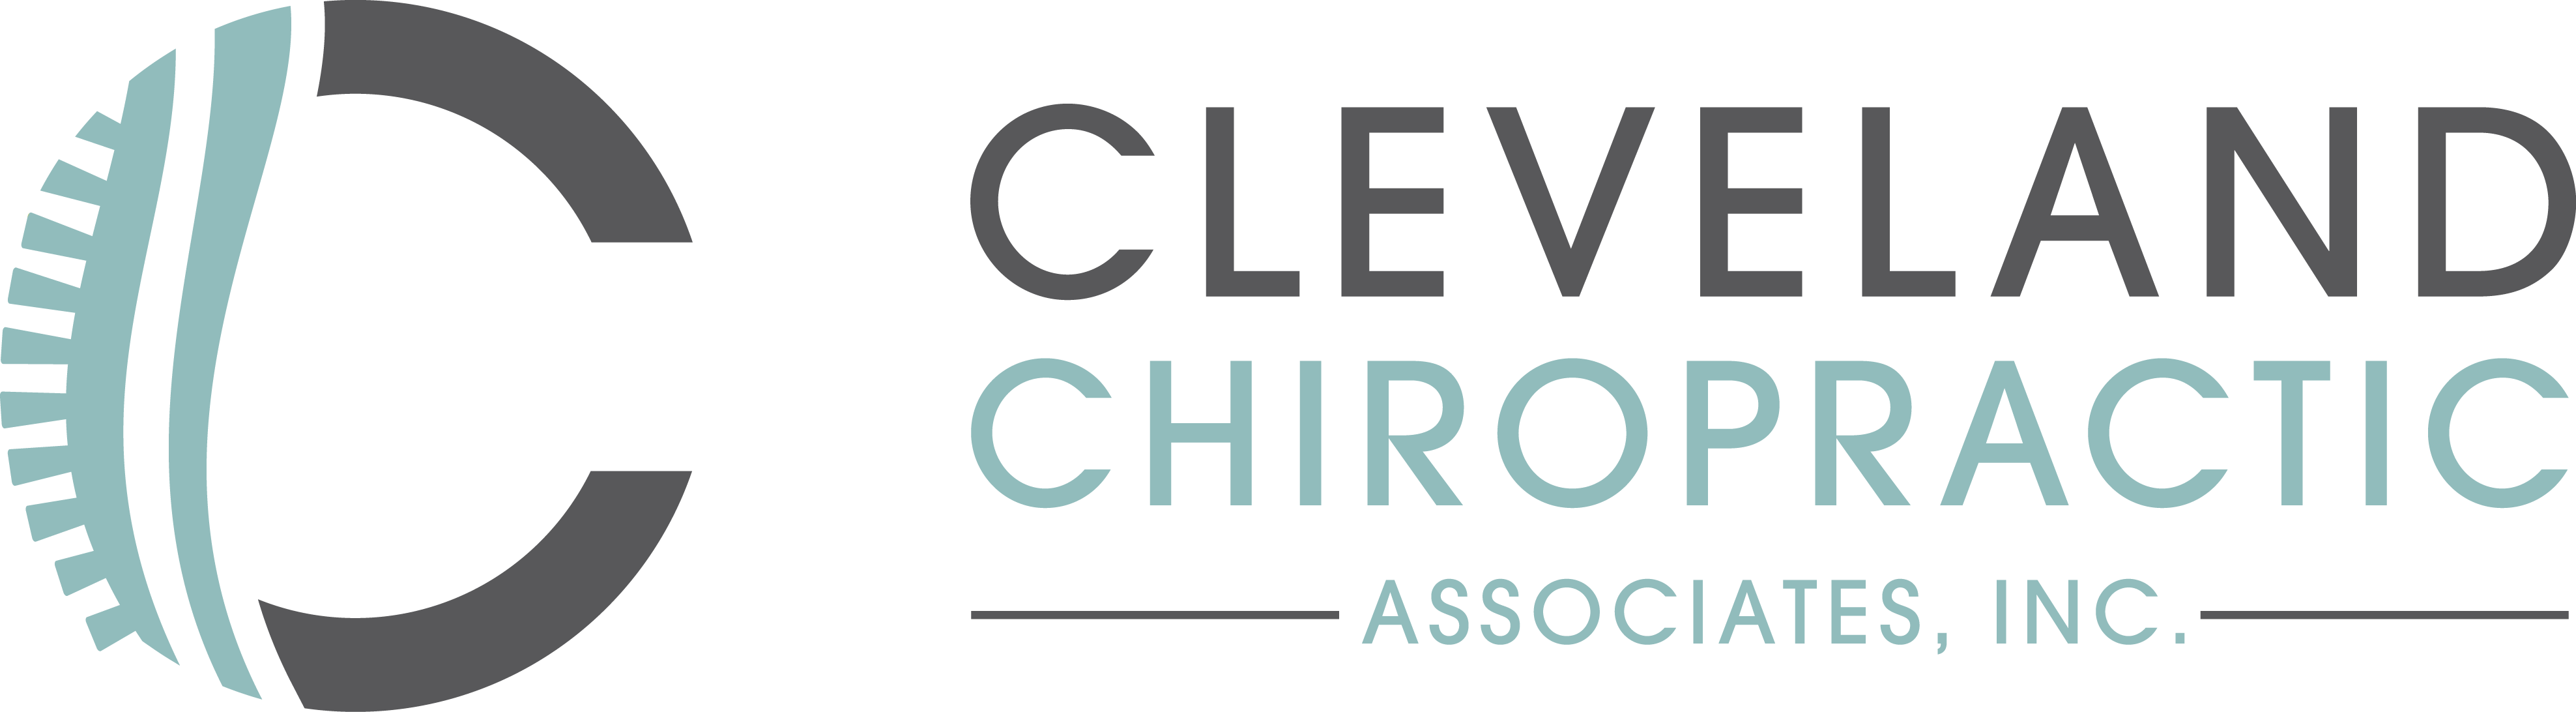 Cleveland Chiropractic Associates, Inc.